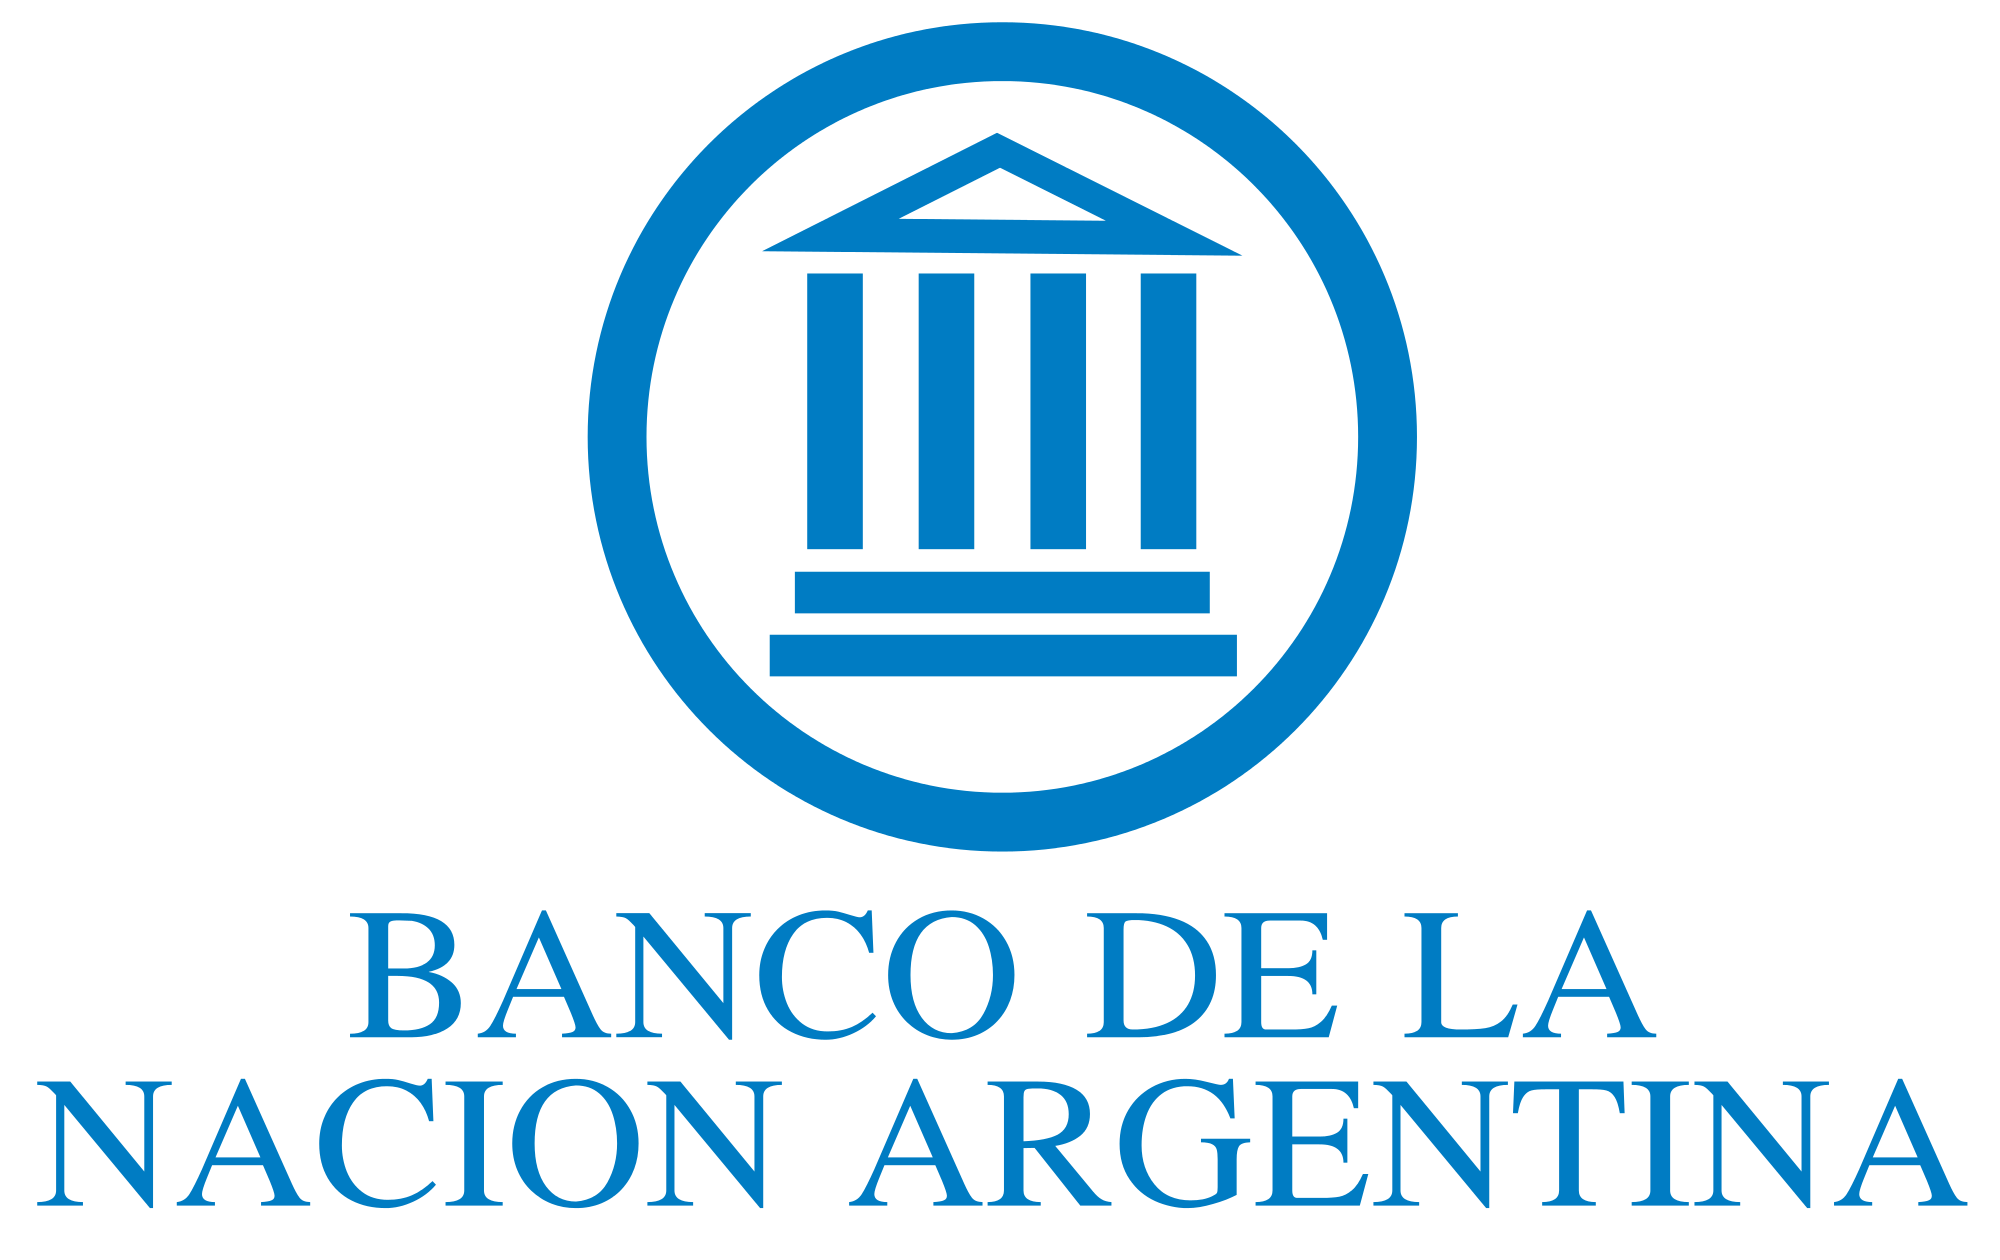 Banco de la Nacion Argentina Logo photo - 1